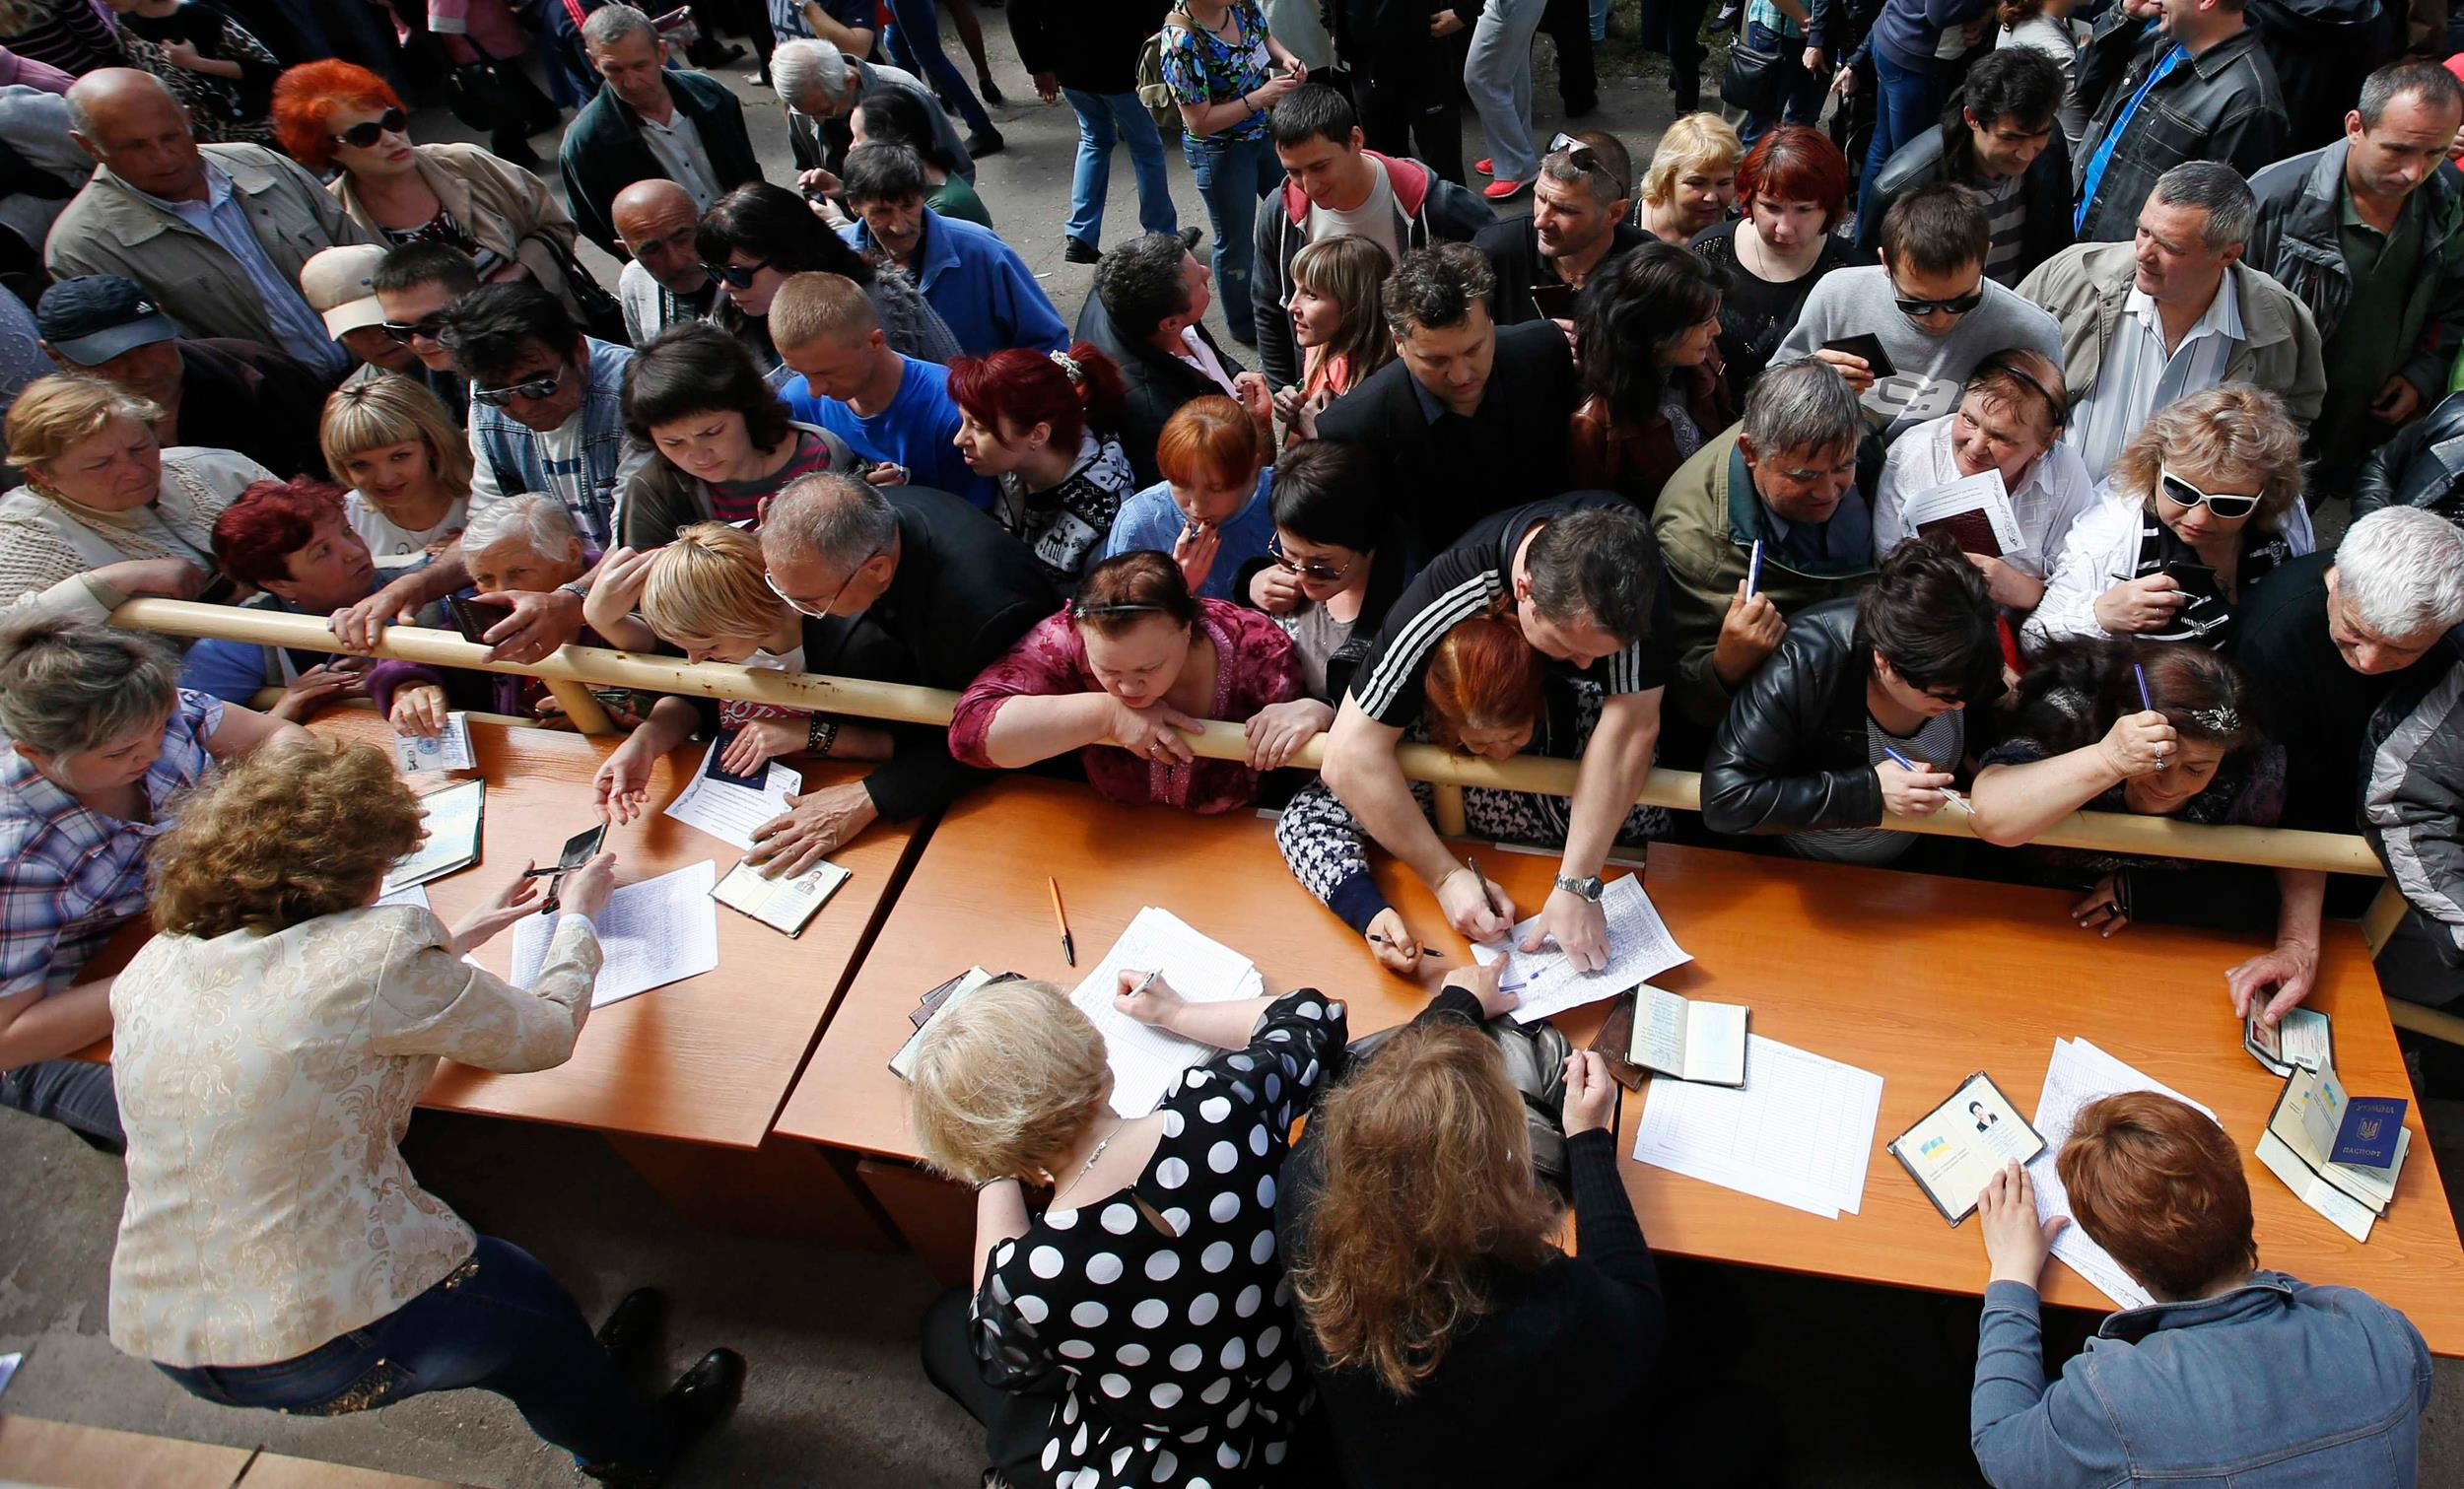 Image: People stand in a line to receive ballots from members of a local election commission during the referendum on the status of Donetsk region in the eastern Ukrainian city of Mariupol